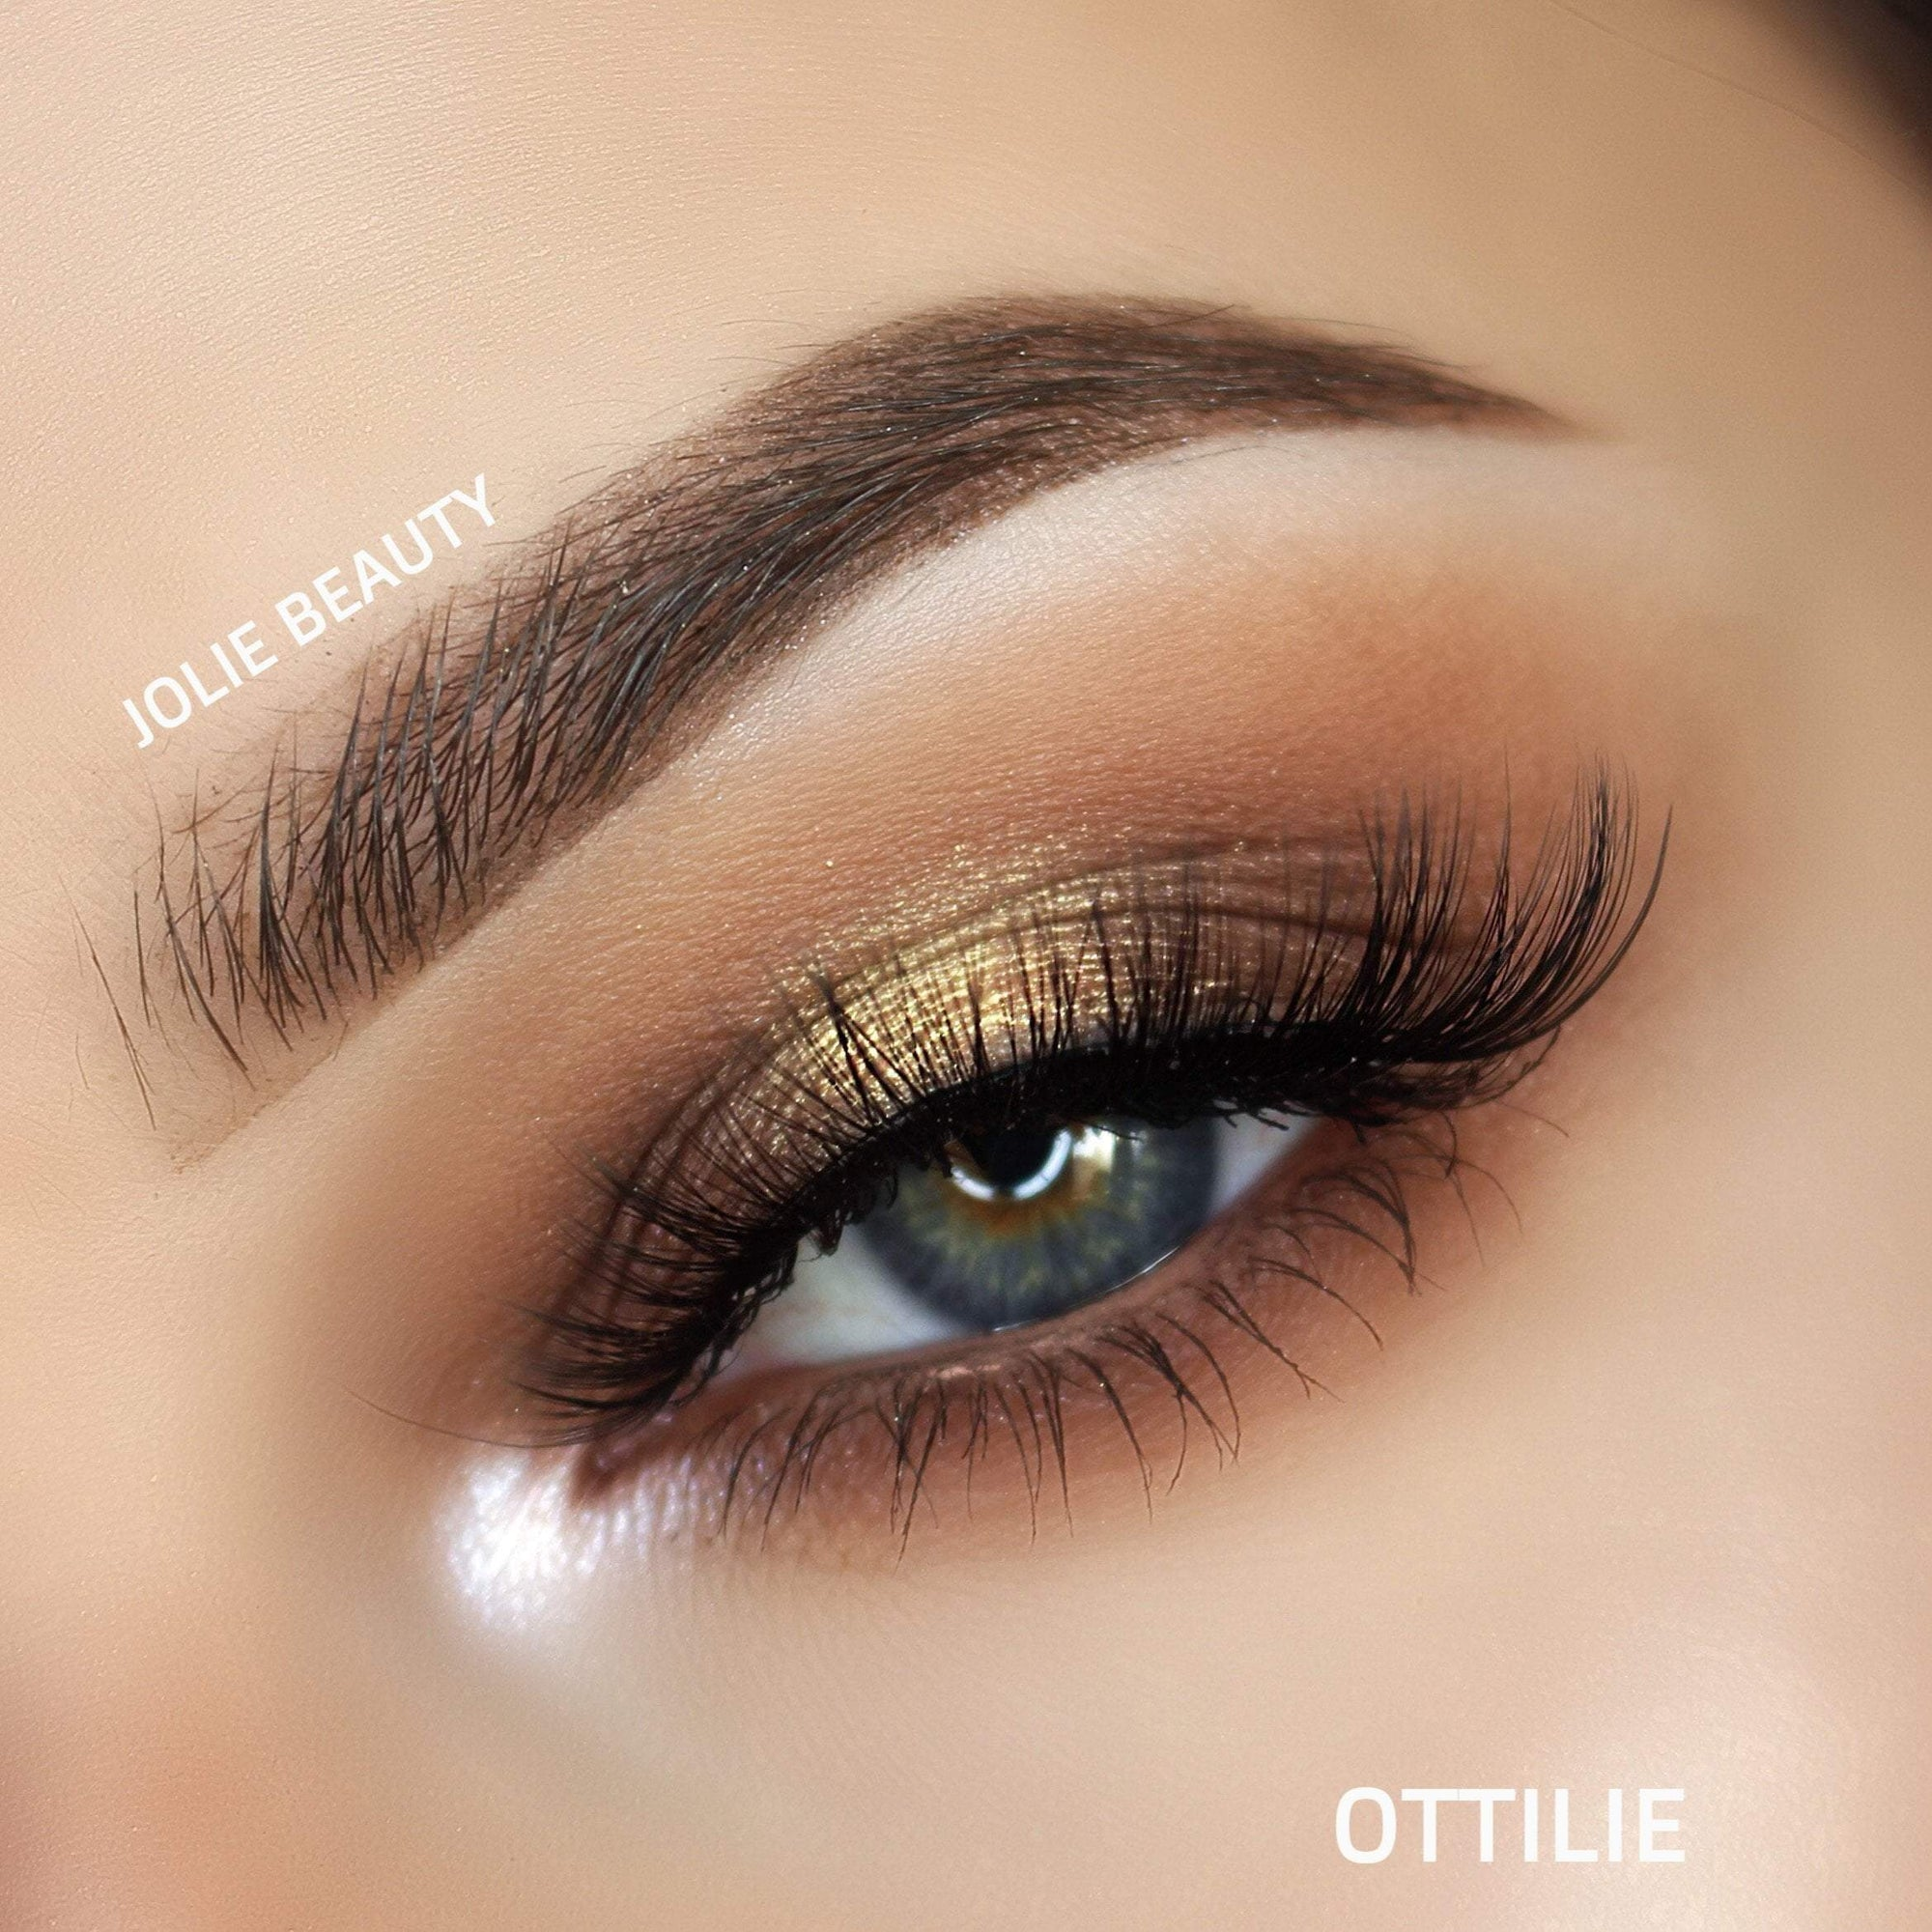 Slayin Lashes By Jolie Beauty Ottilie Cruelty Free Eyelashes